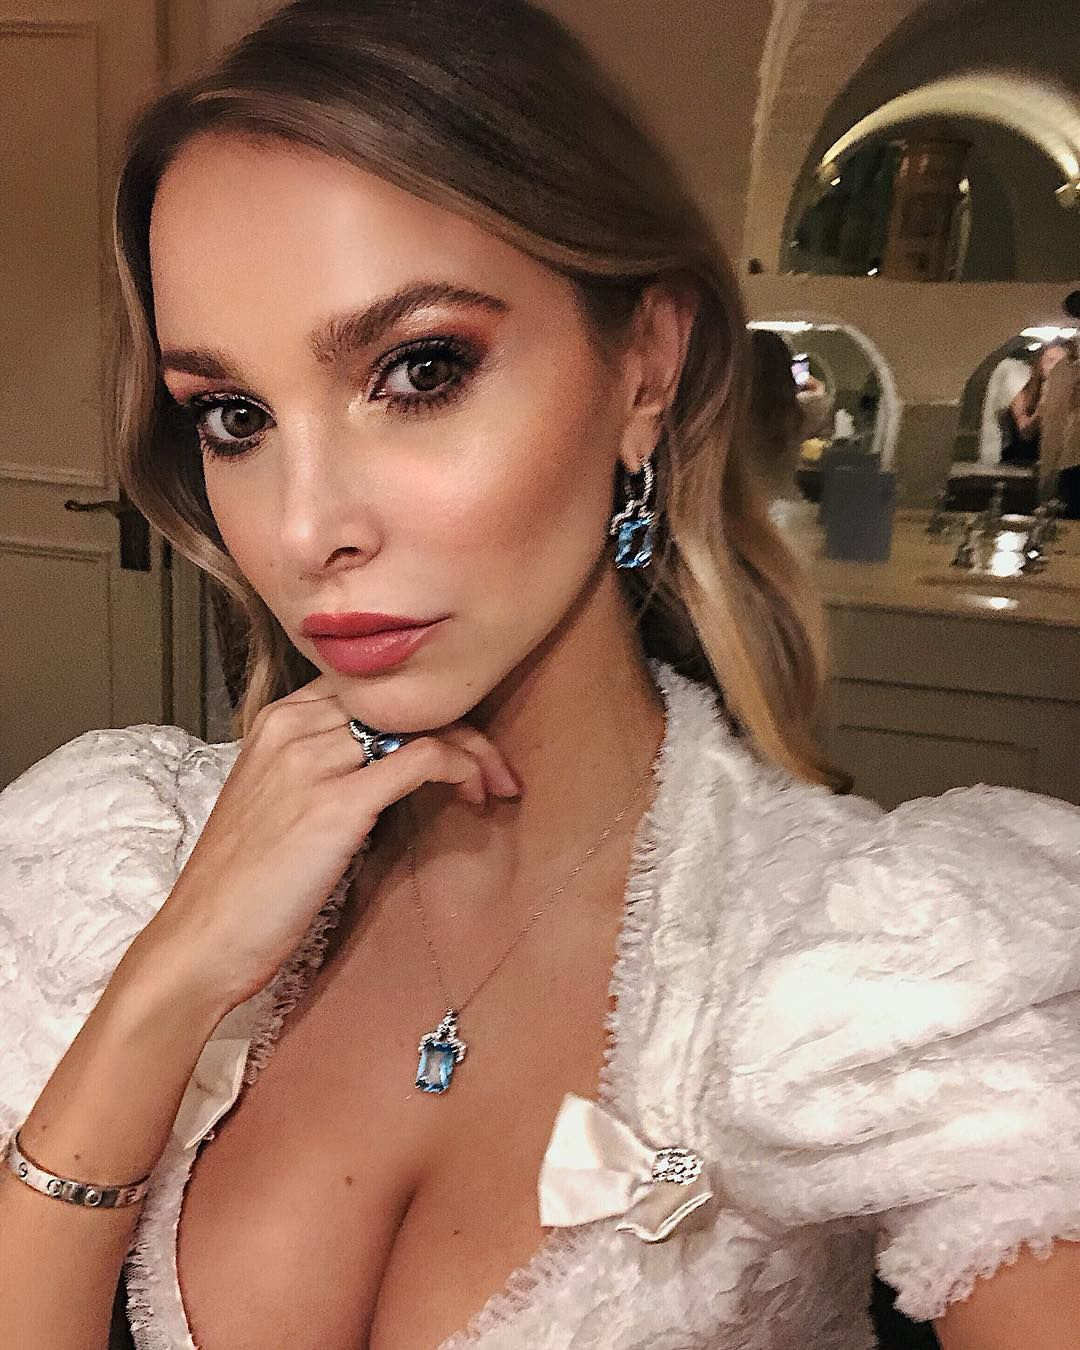 Image may contain:Made in Chelsea cast are actually from, Made in Chelsea, cast, place of birth, from, Sophie Hermann, Accessories, Accessory, Finger, Gown, Robe, Clothing, Fashion, Evening Dress, Apparel, Person, Human